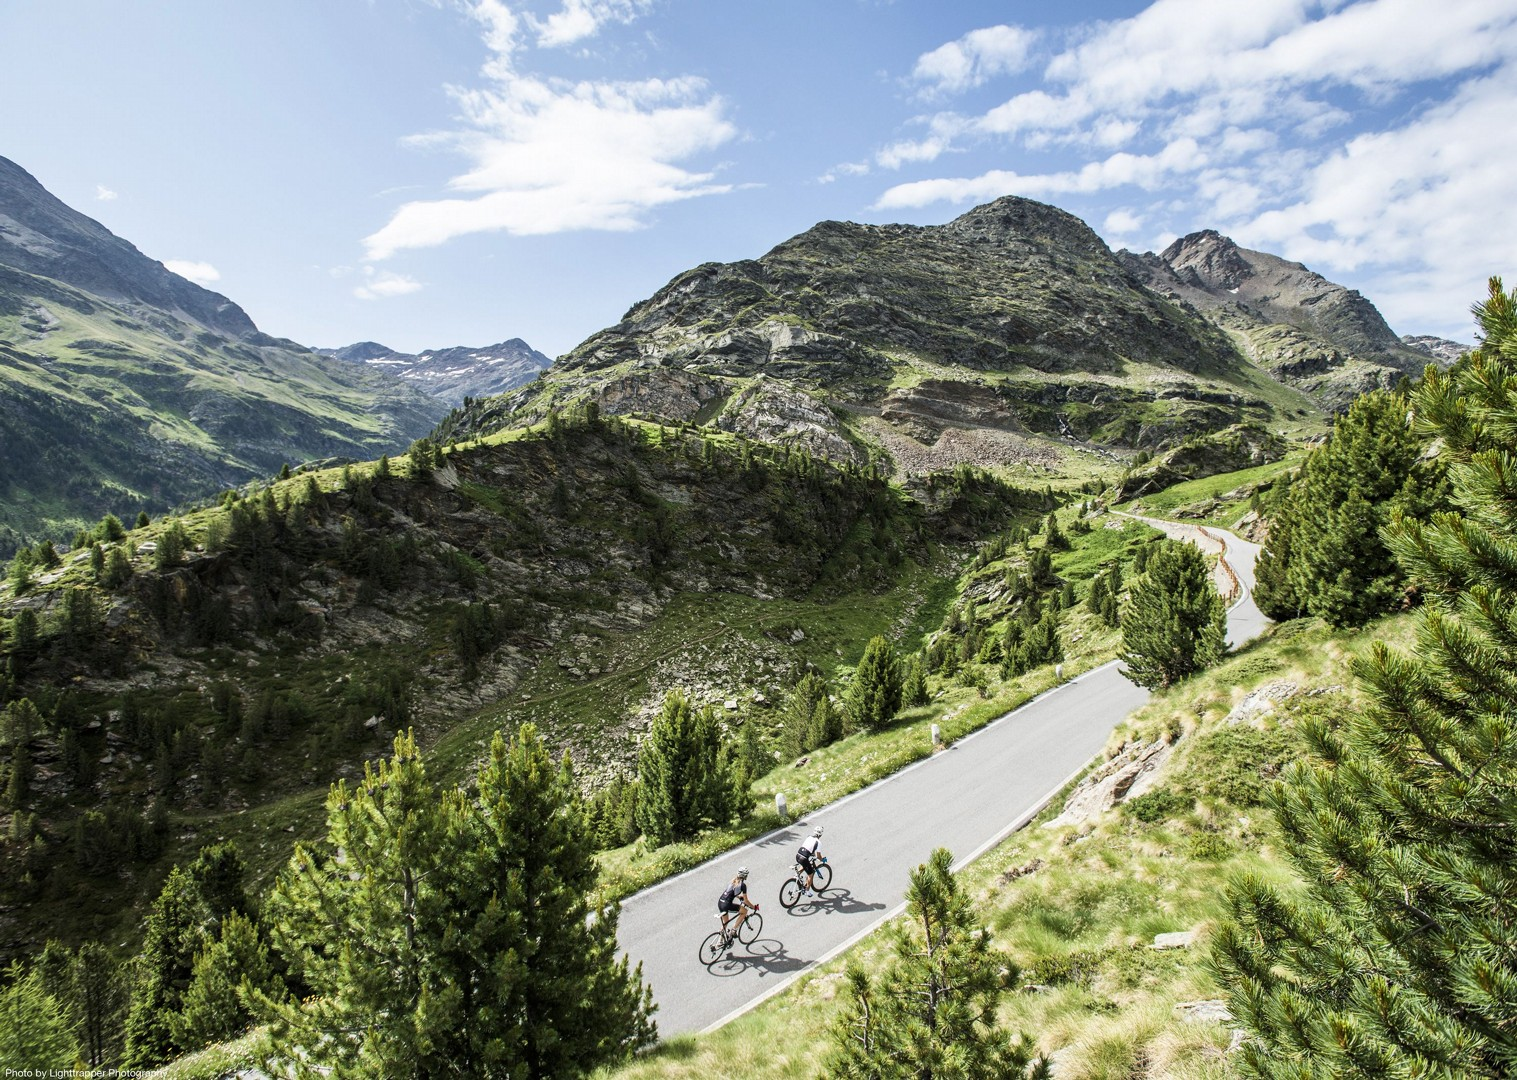 citta-alta-guided-road-cycling-holiday.jpg - Italy - Alps and Dolomites - Giants of the Giro - Guided Road Cycling Holiday - Italia Road Cycling